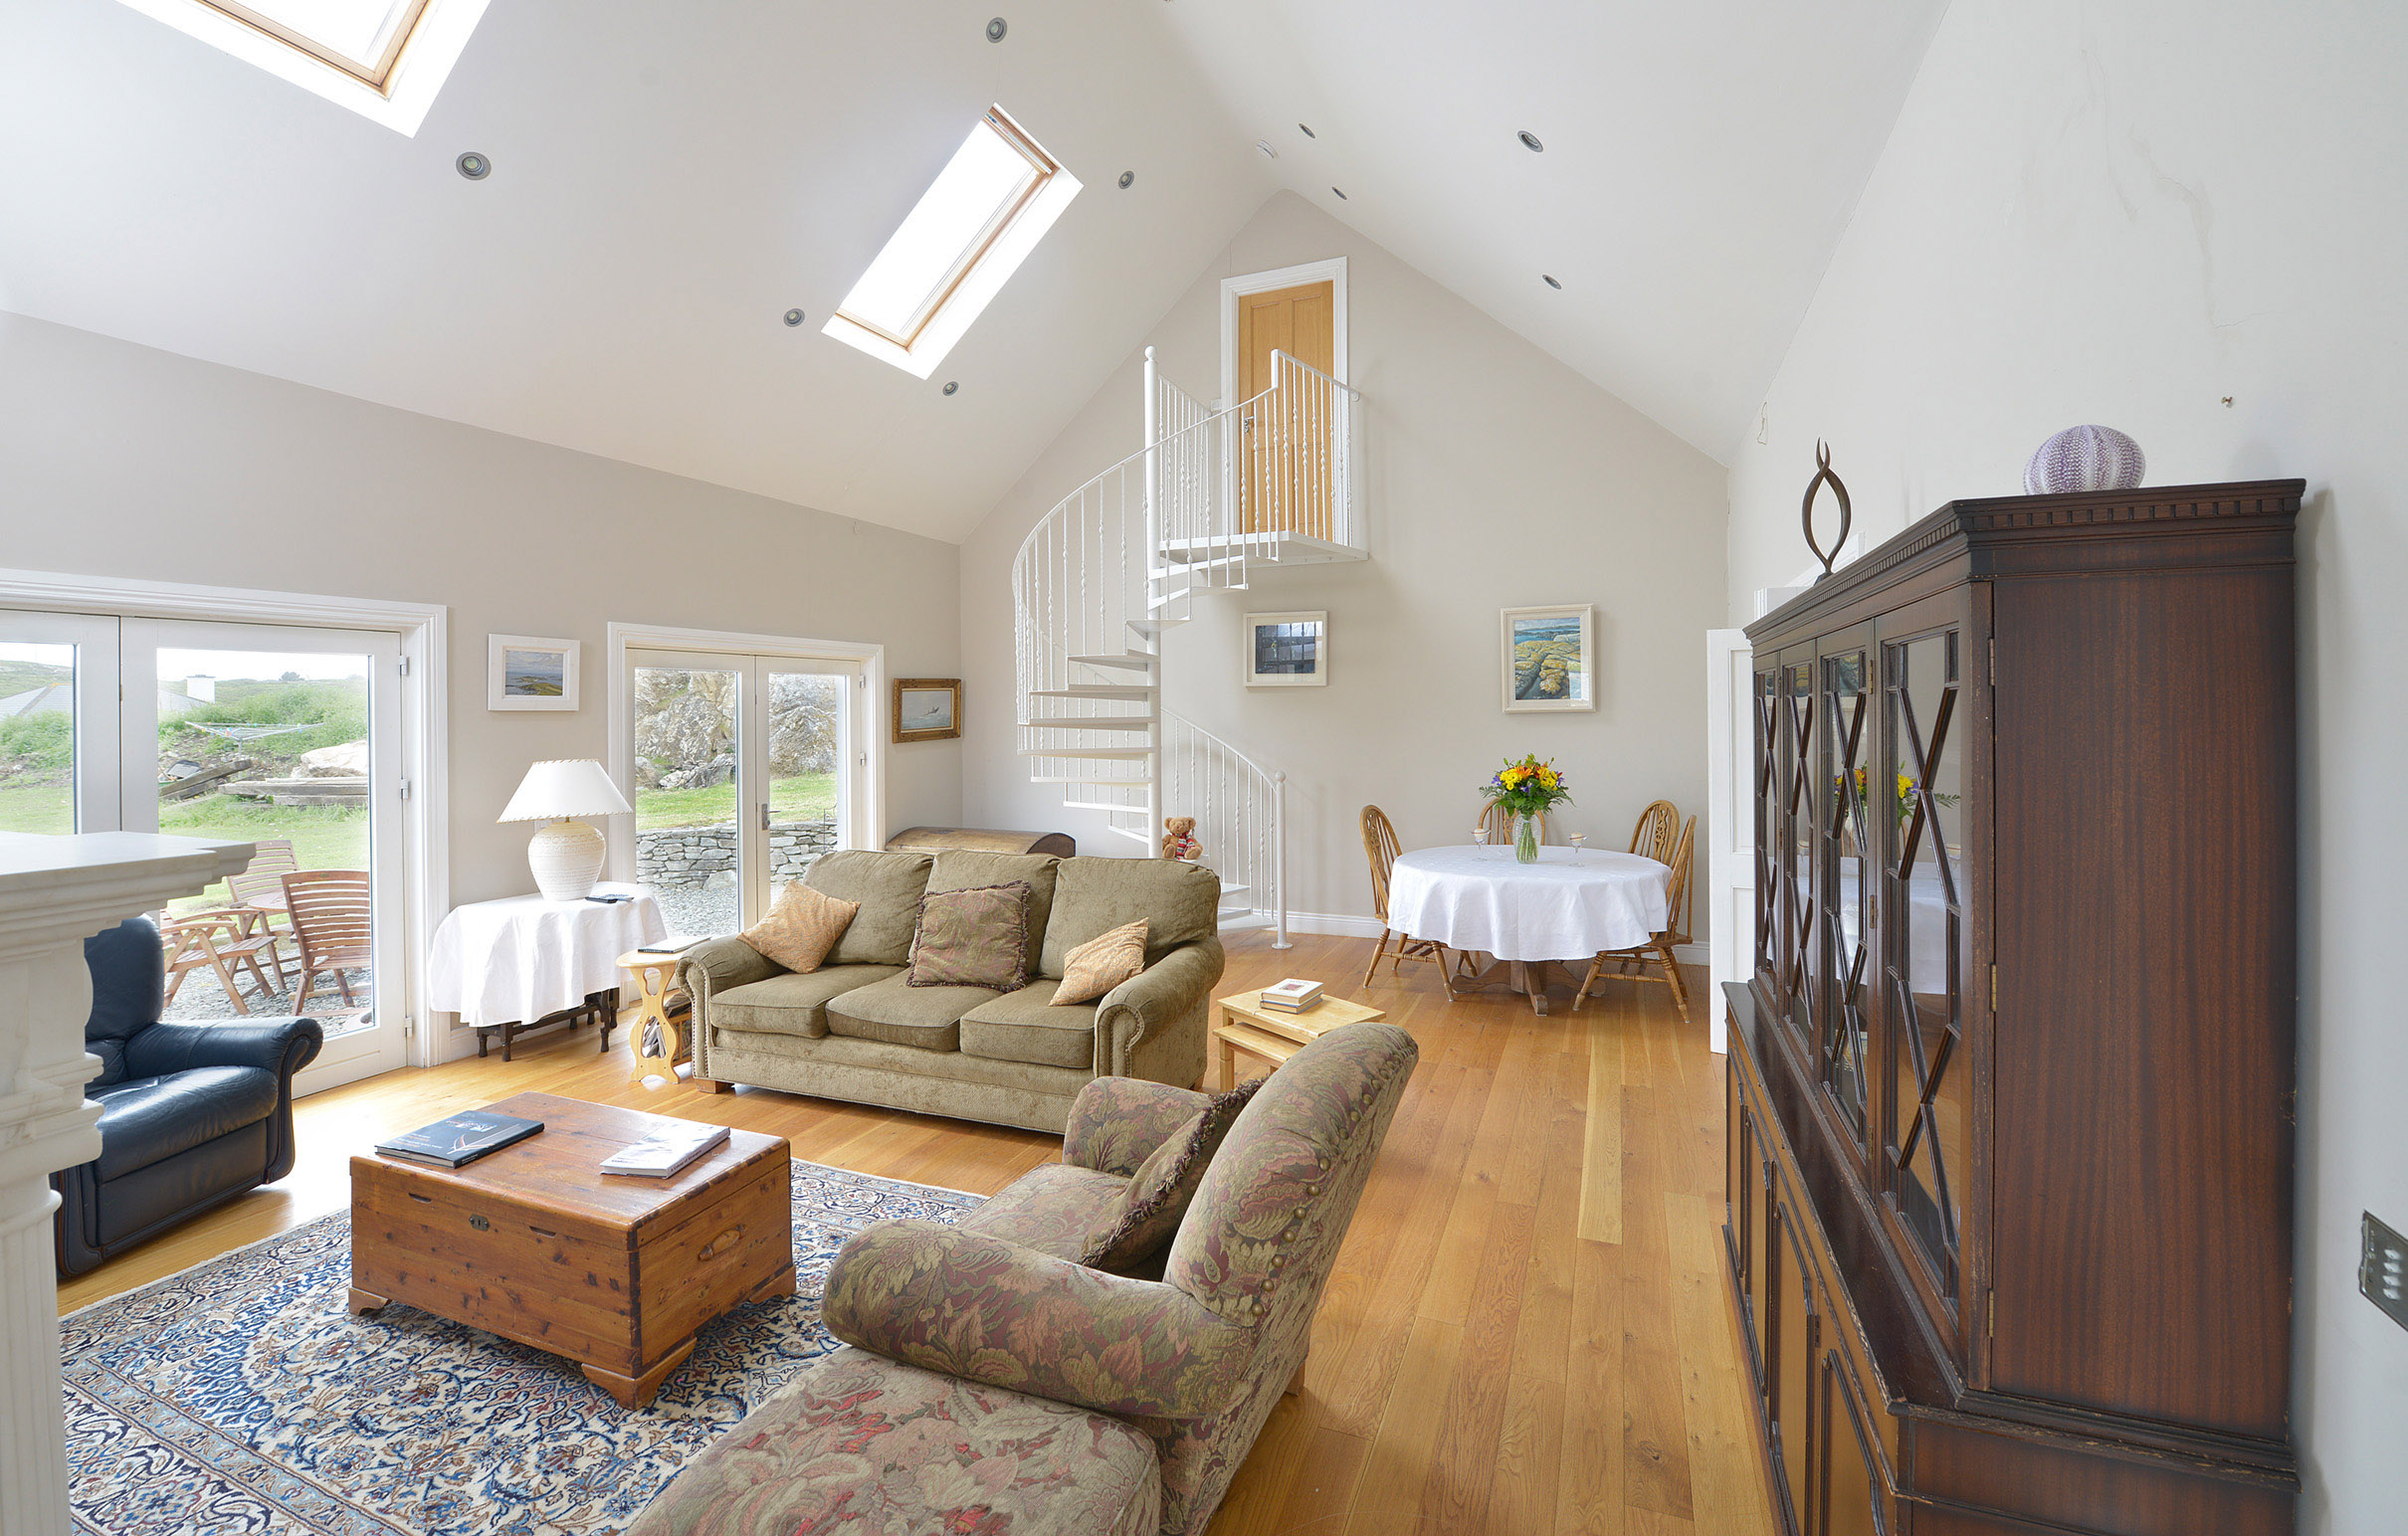 Interiors-photographer-Galway-Ireland-Clifden-house-21